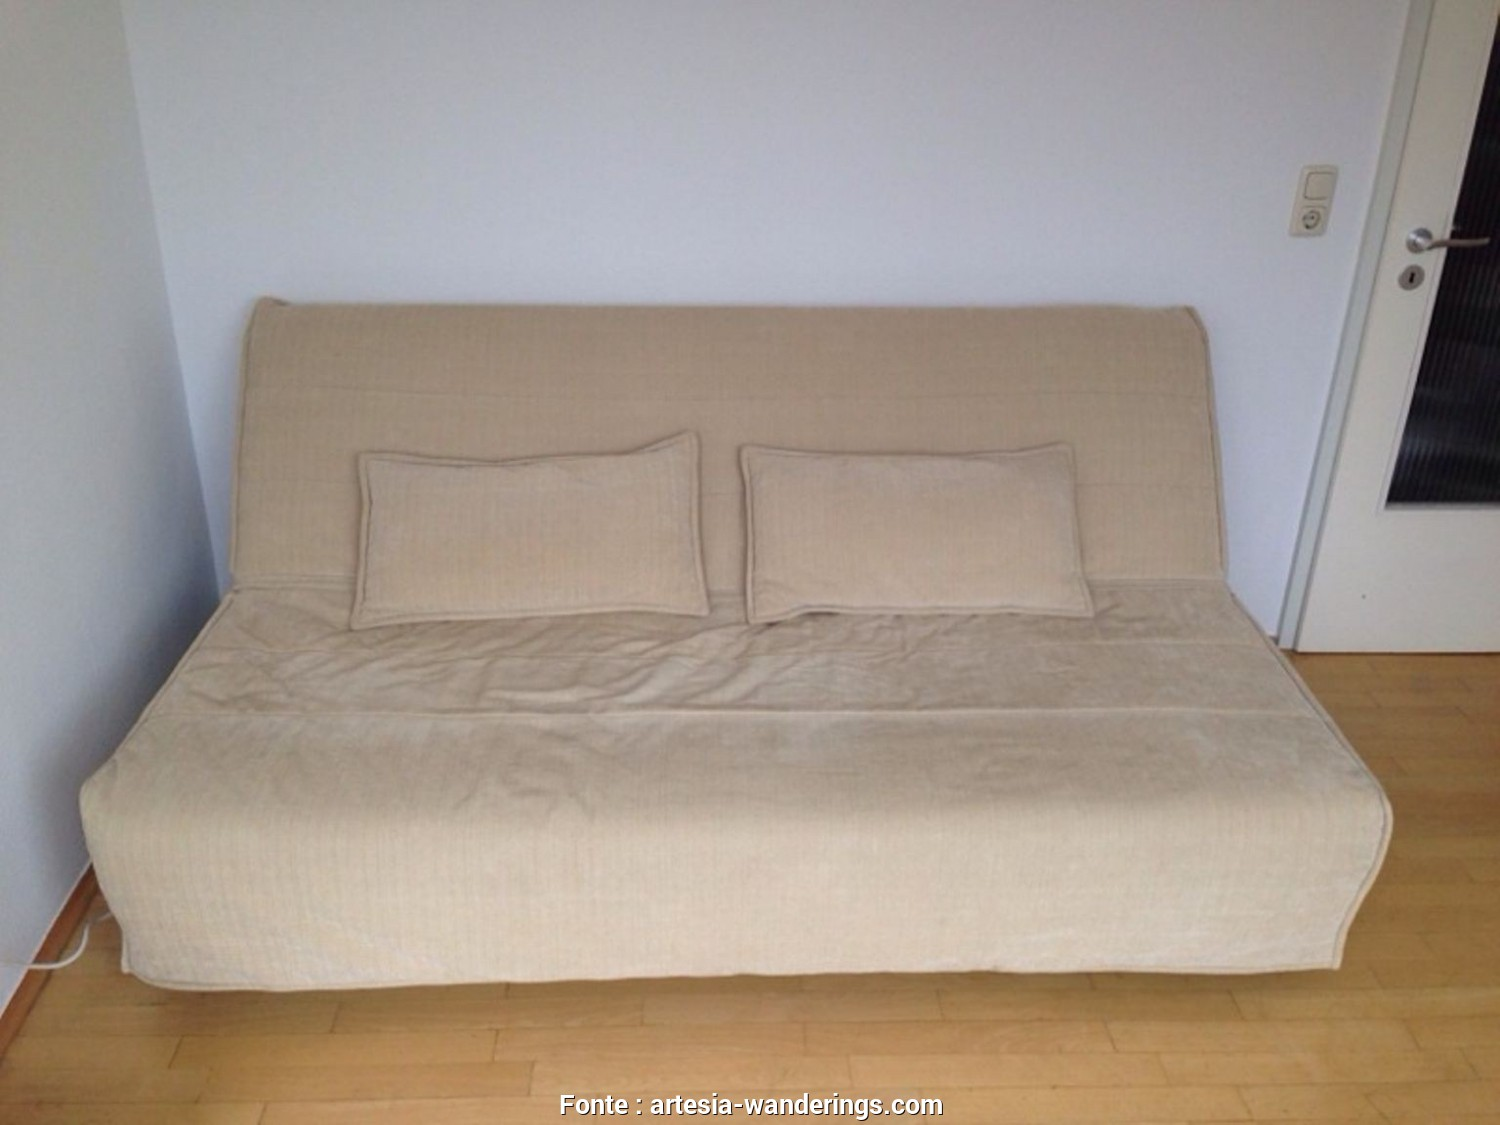 Beddinge Ikea Gebraucht, Modesto Affordable Gebraucht Ikea Schlafsofa Beddinge Beige Kissen In Oberteil With Beddinge Bettkasten